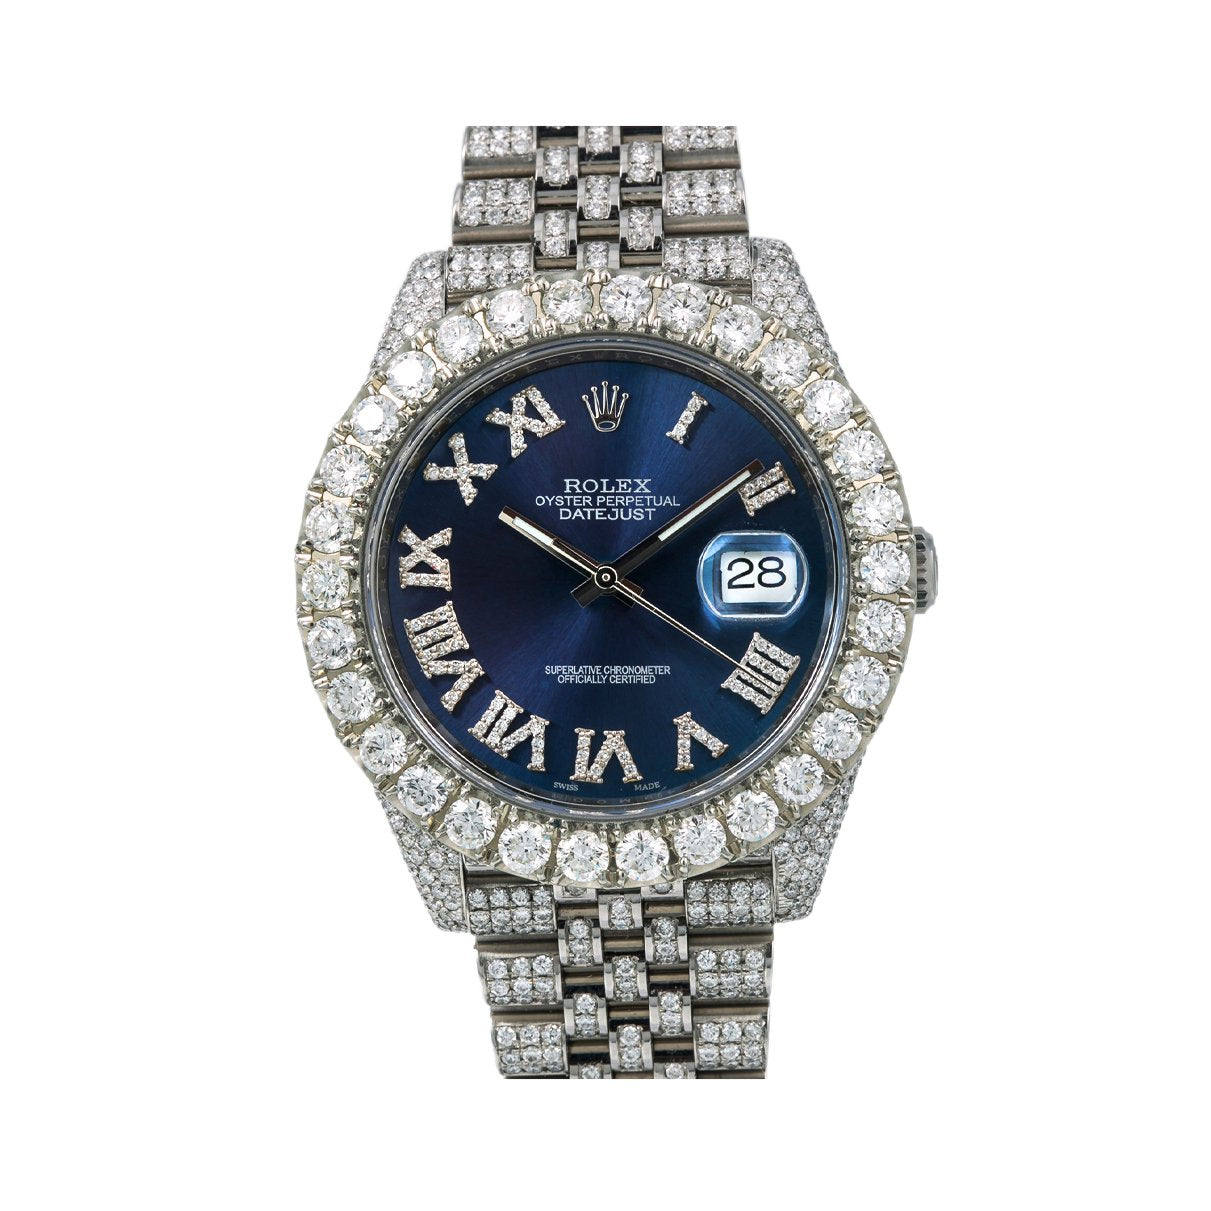 Rolex Datejust Diamond Watch, 126300 41mm, Blue Diamond Dial With Stainless Steel Bracelet